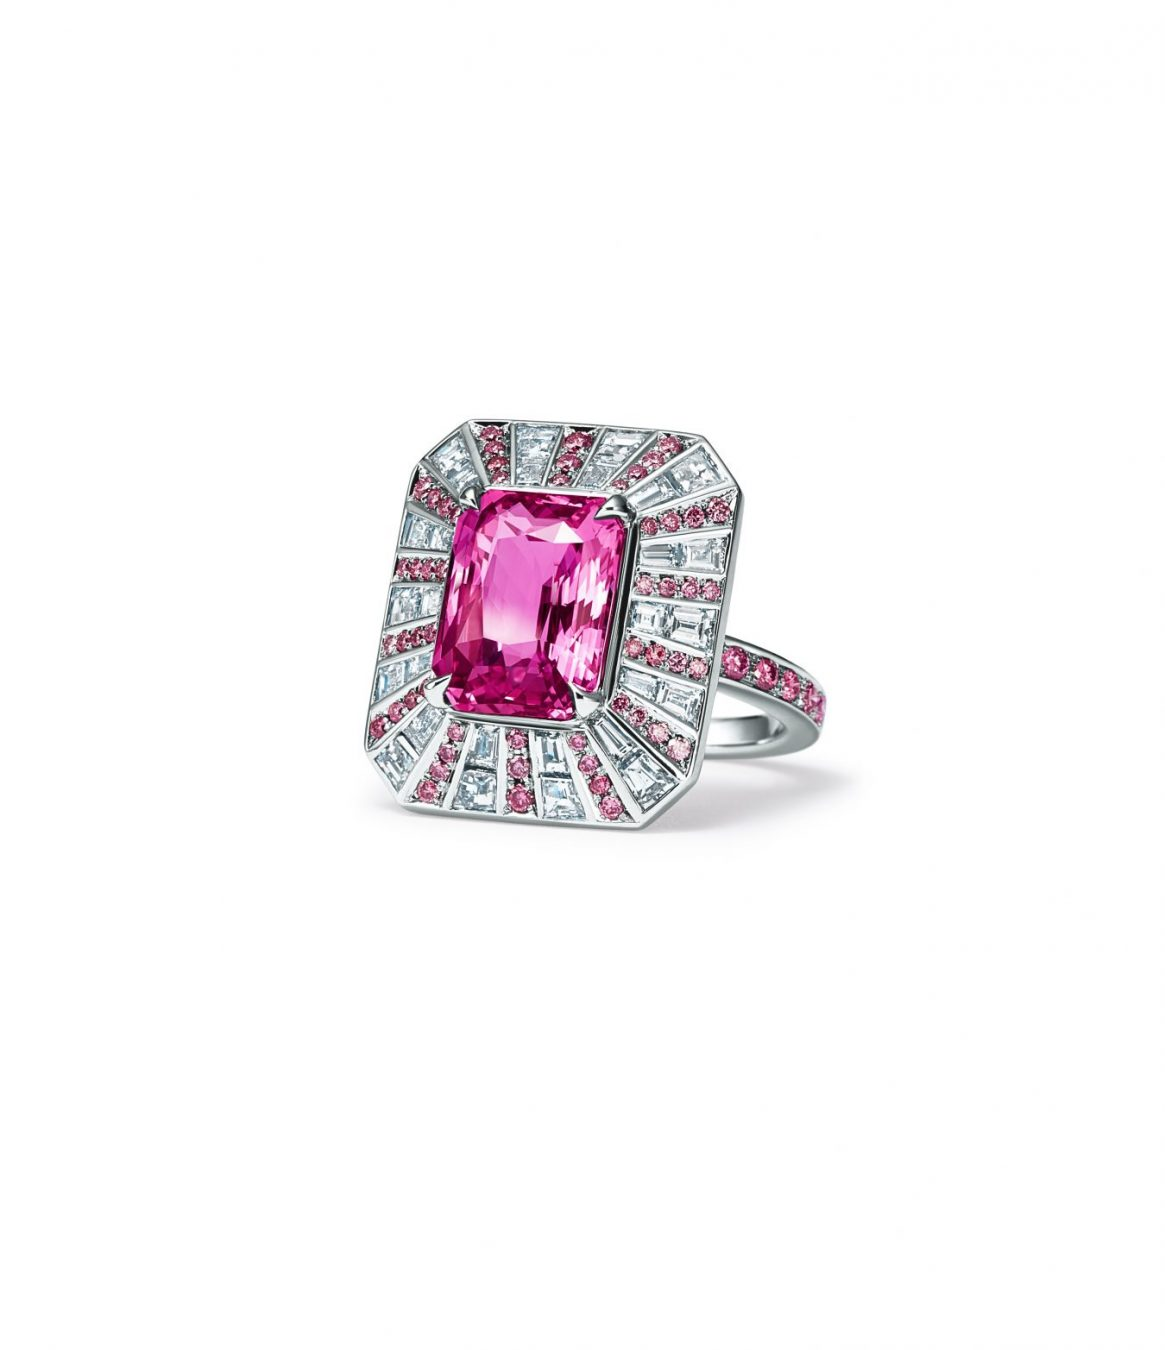 1bf634d39b4a Ring in platinum with a 6.05-carat emerald- cut pink sapphire